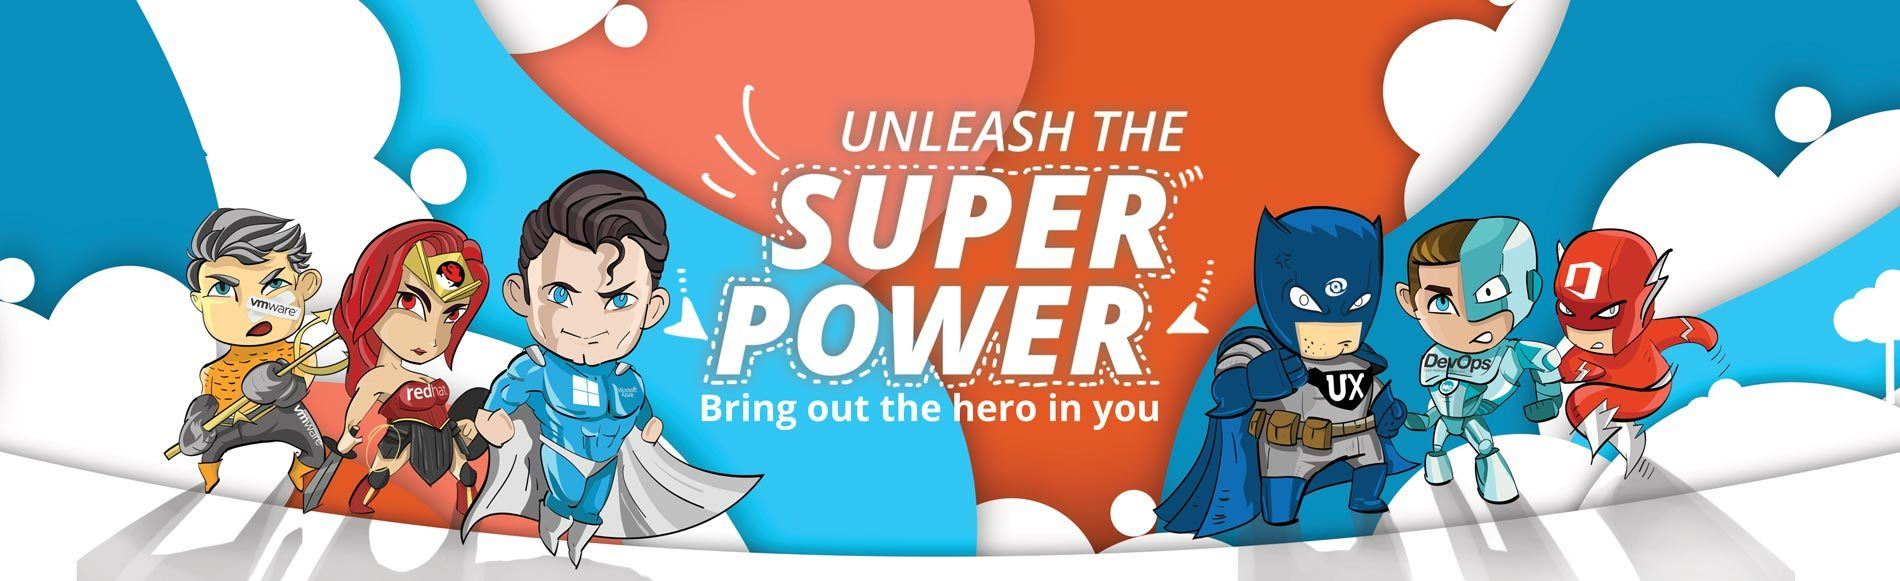 superpower_campaign_dmain